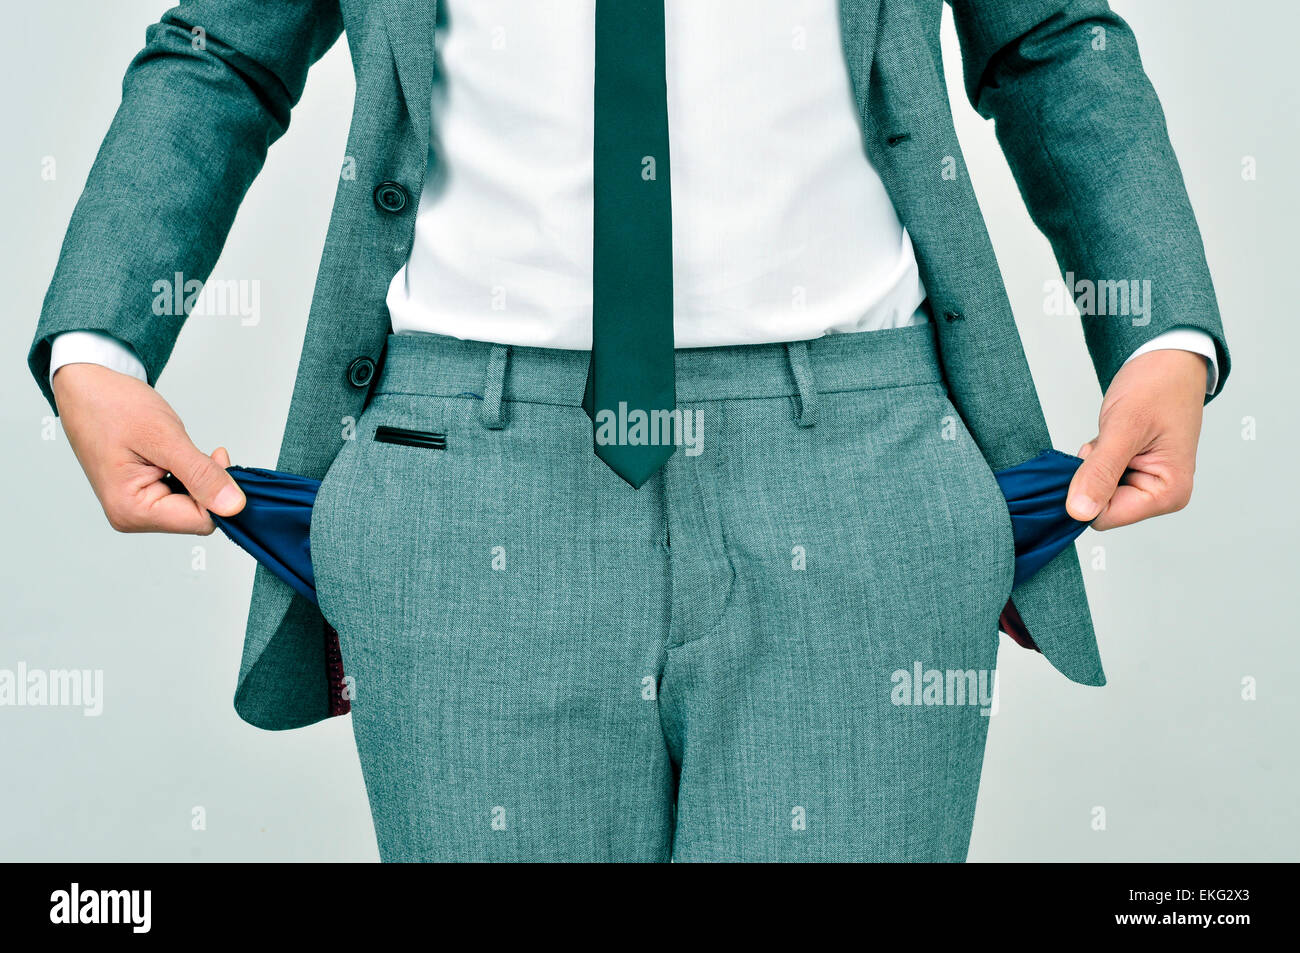 broke businessman wearing a gray suit showing his empty pockets - Stock Image